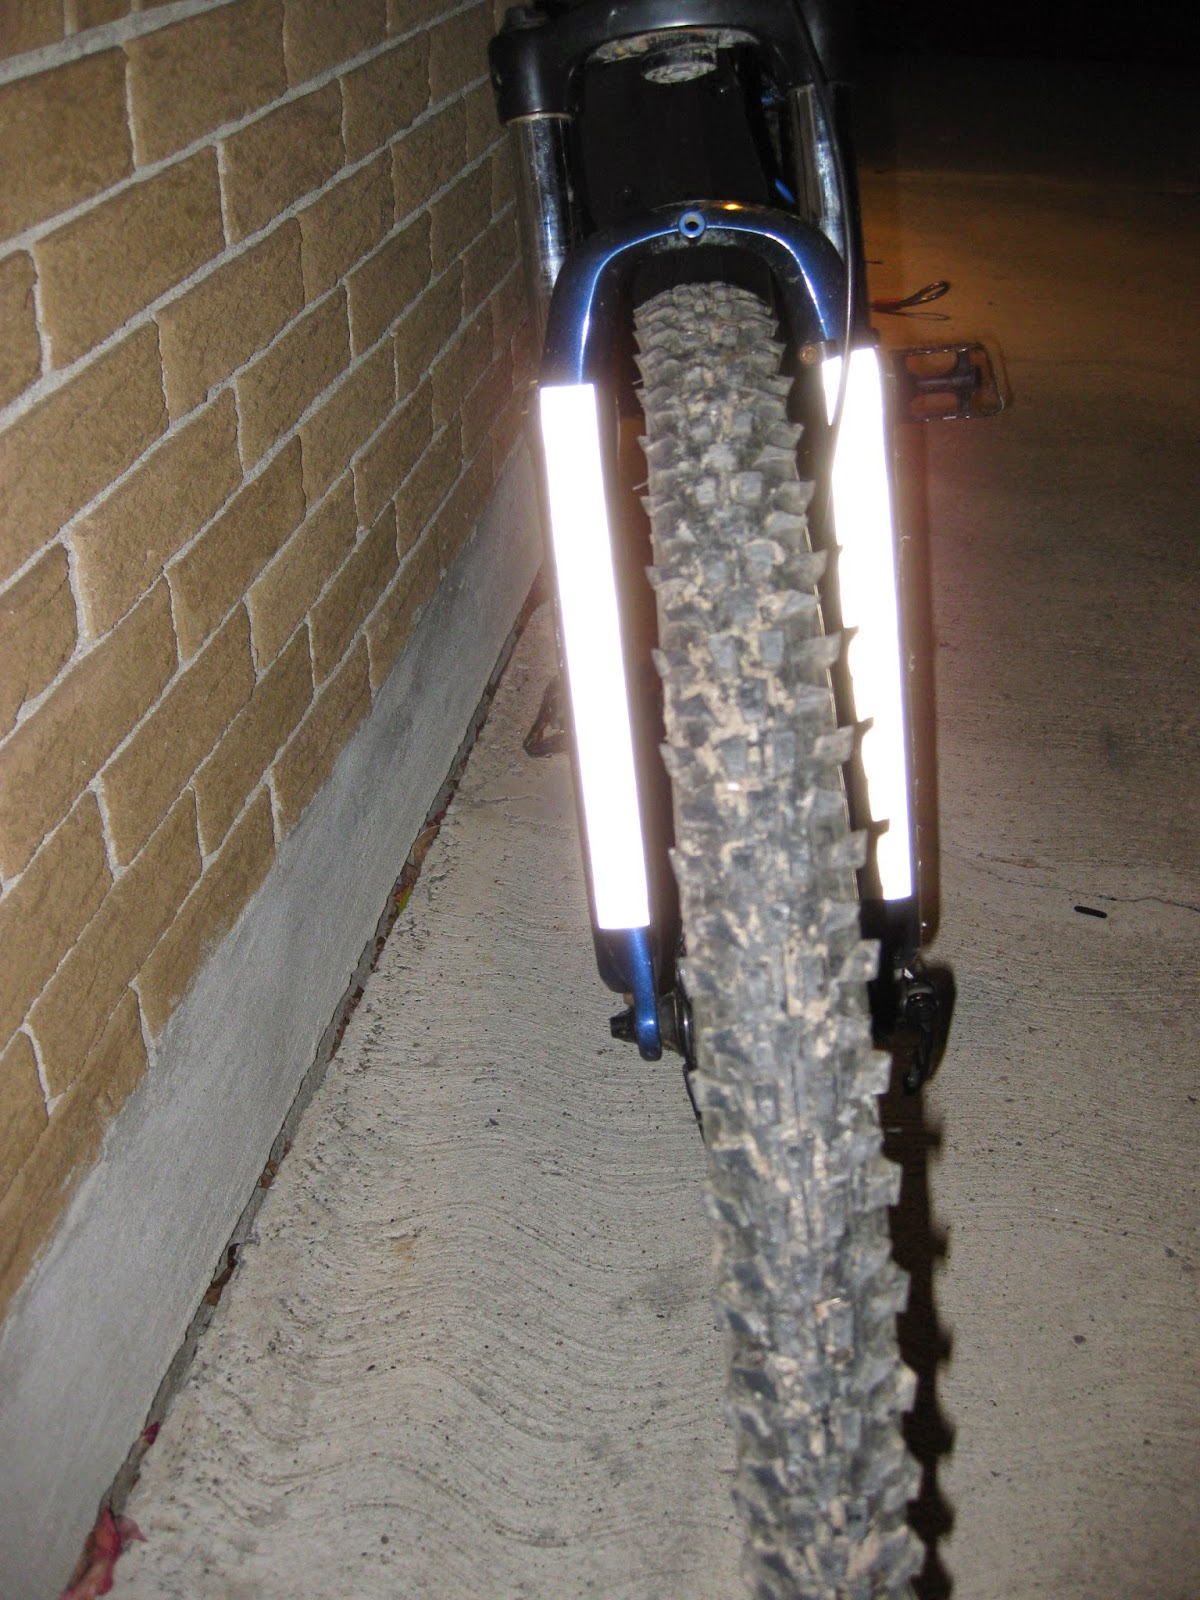 Front fork with reflective white surface.